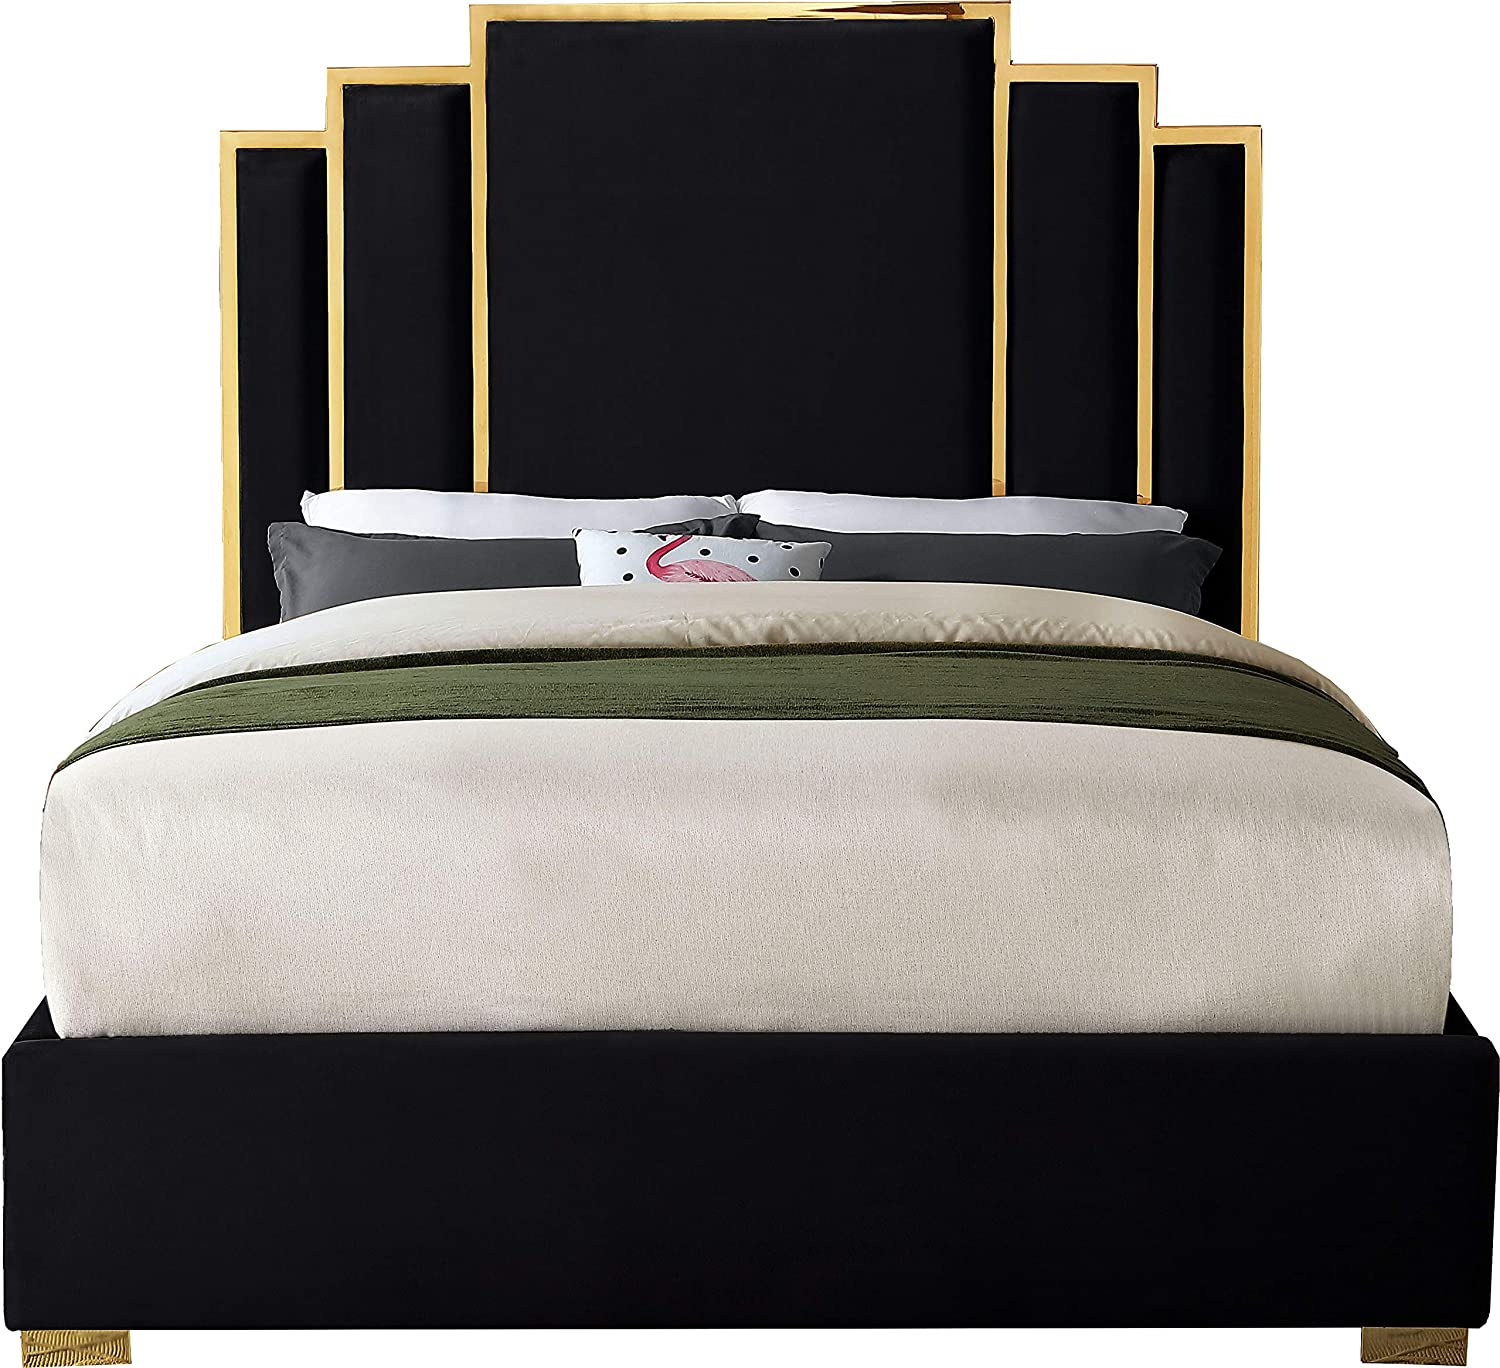 Meridian Furniture Hugo Collection Modern | Contemporary Velvet Upholstered Bed with Polished Gold Metal Frame and Legs, Queen, Black